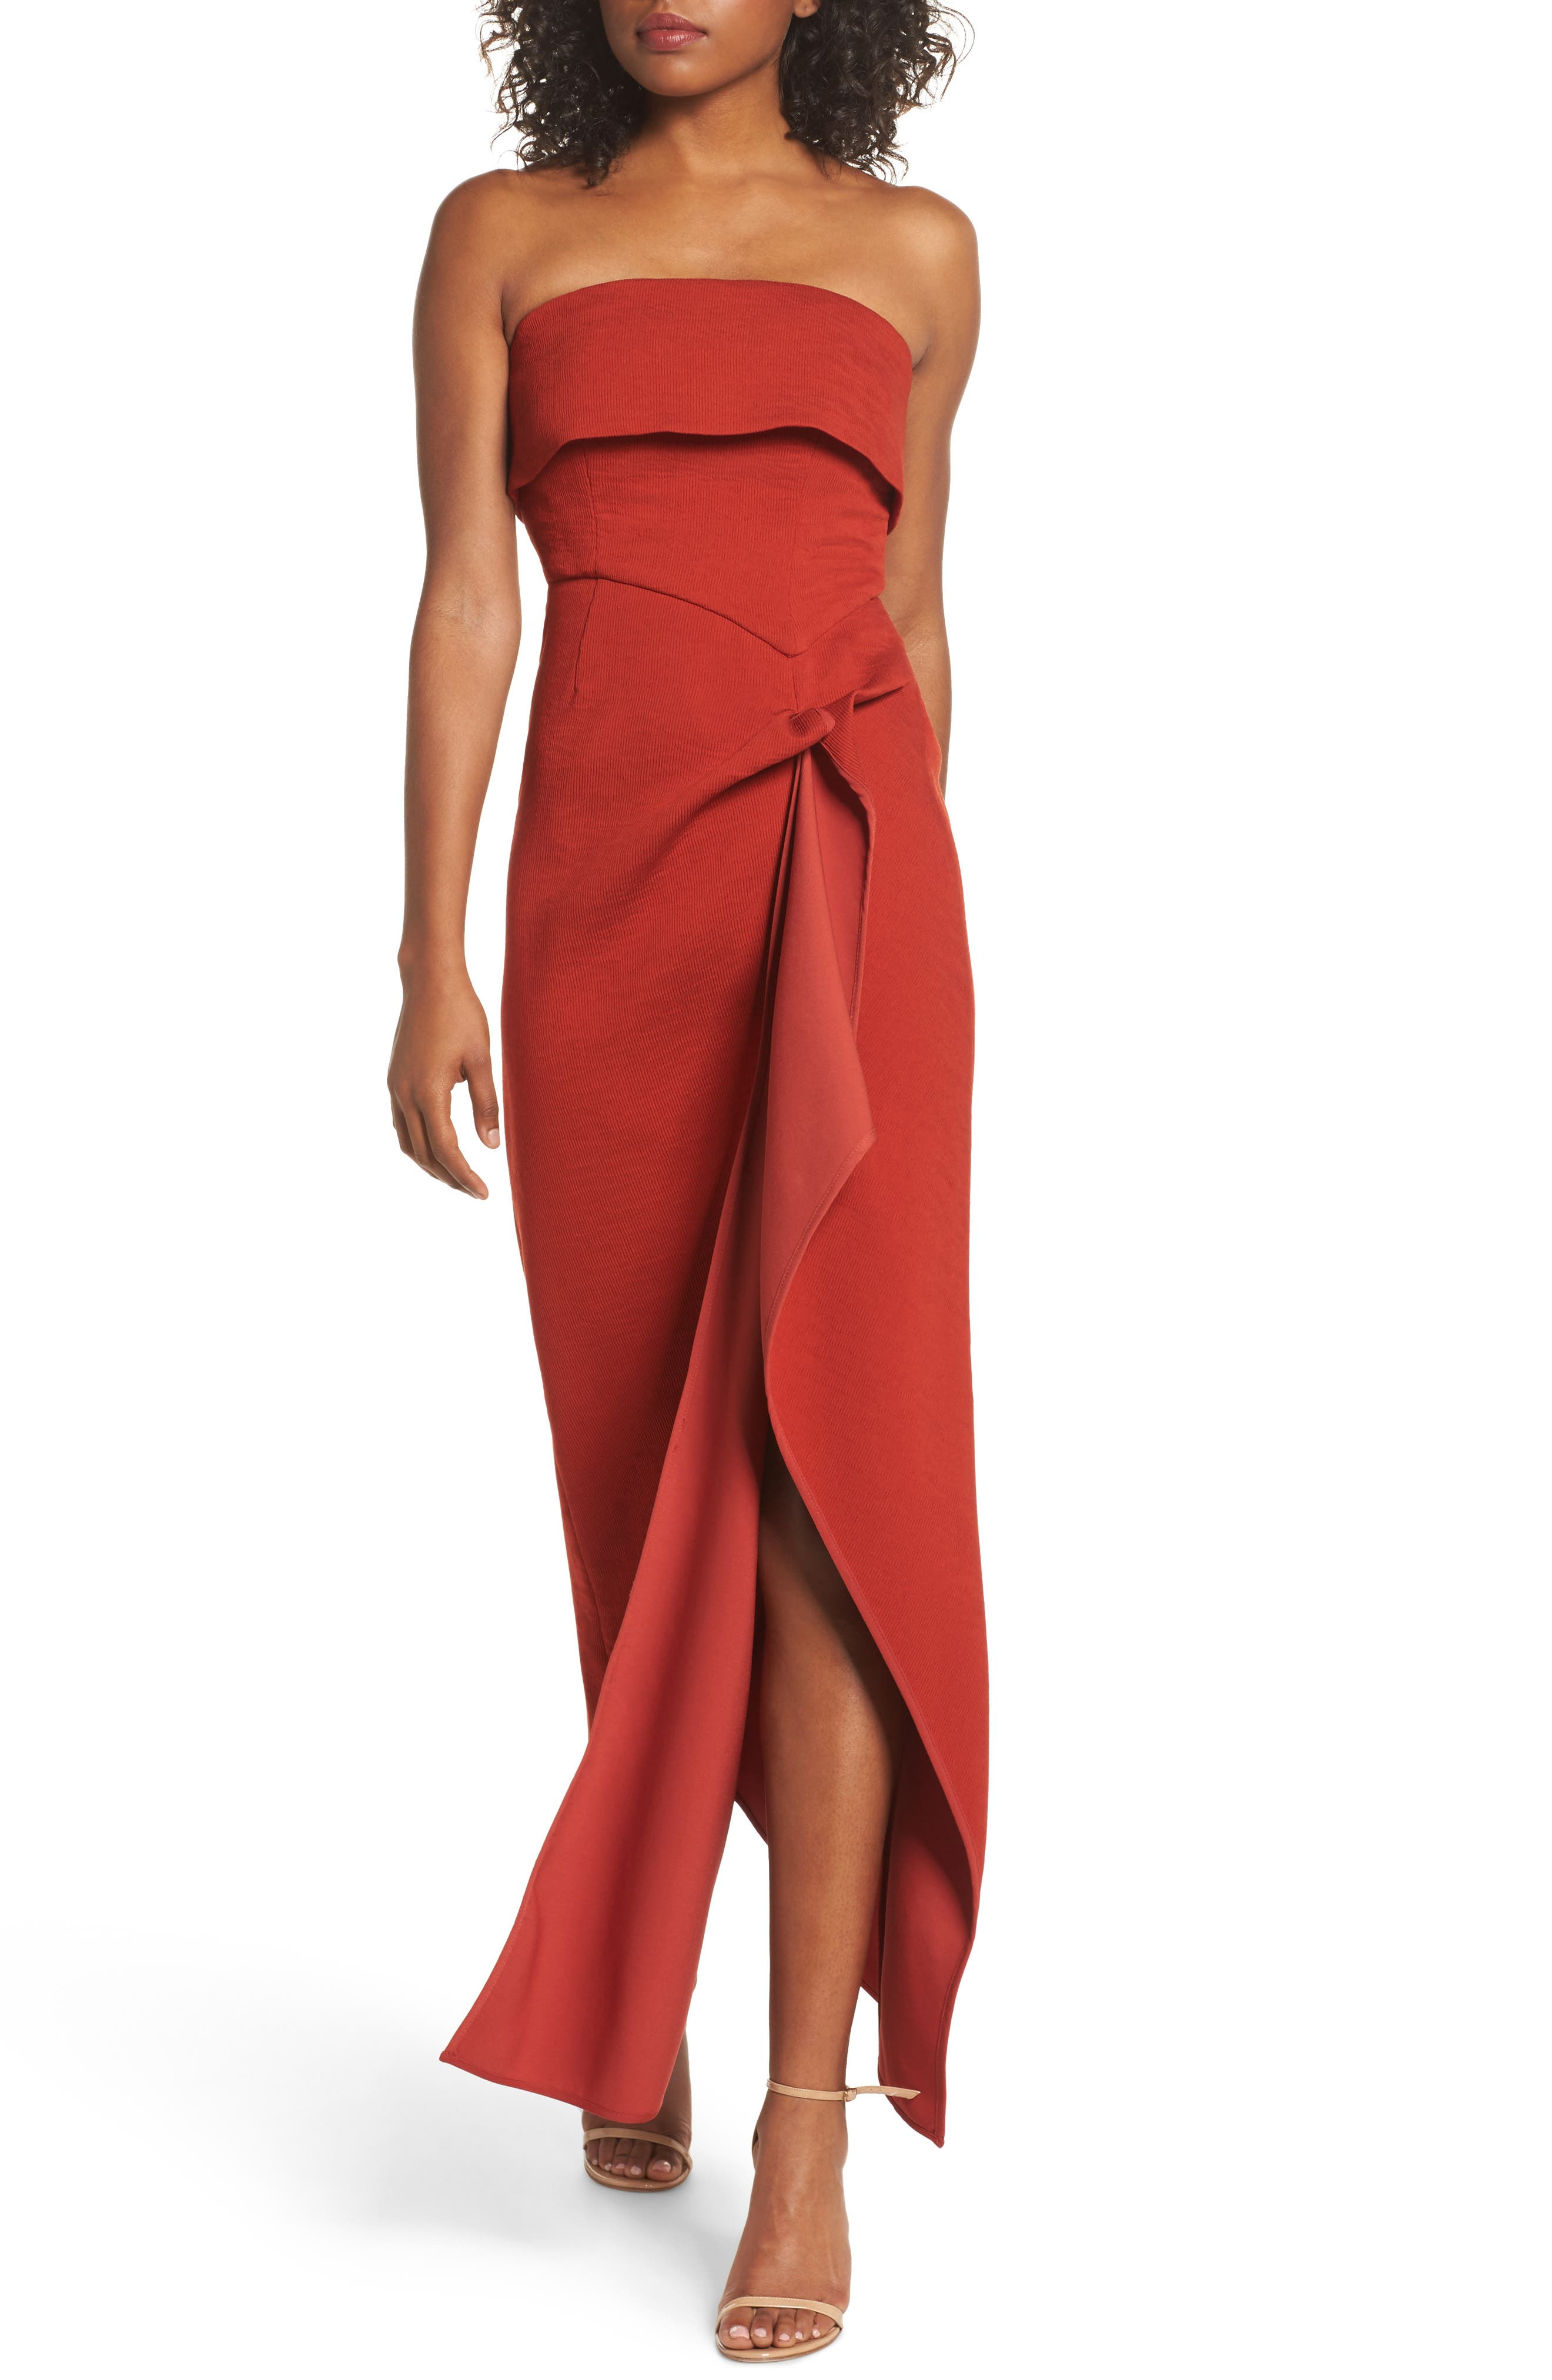 C/MEO Collective Fluidity Strapless Maxi Dress